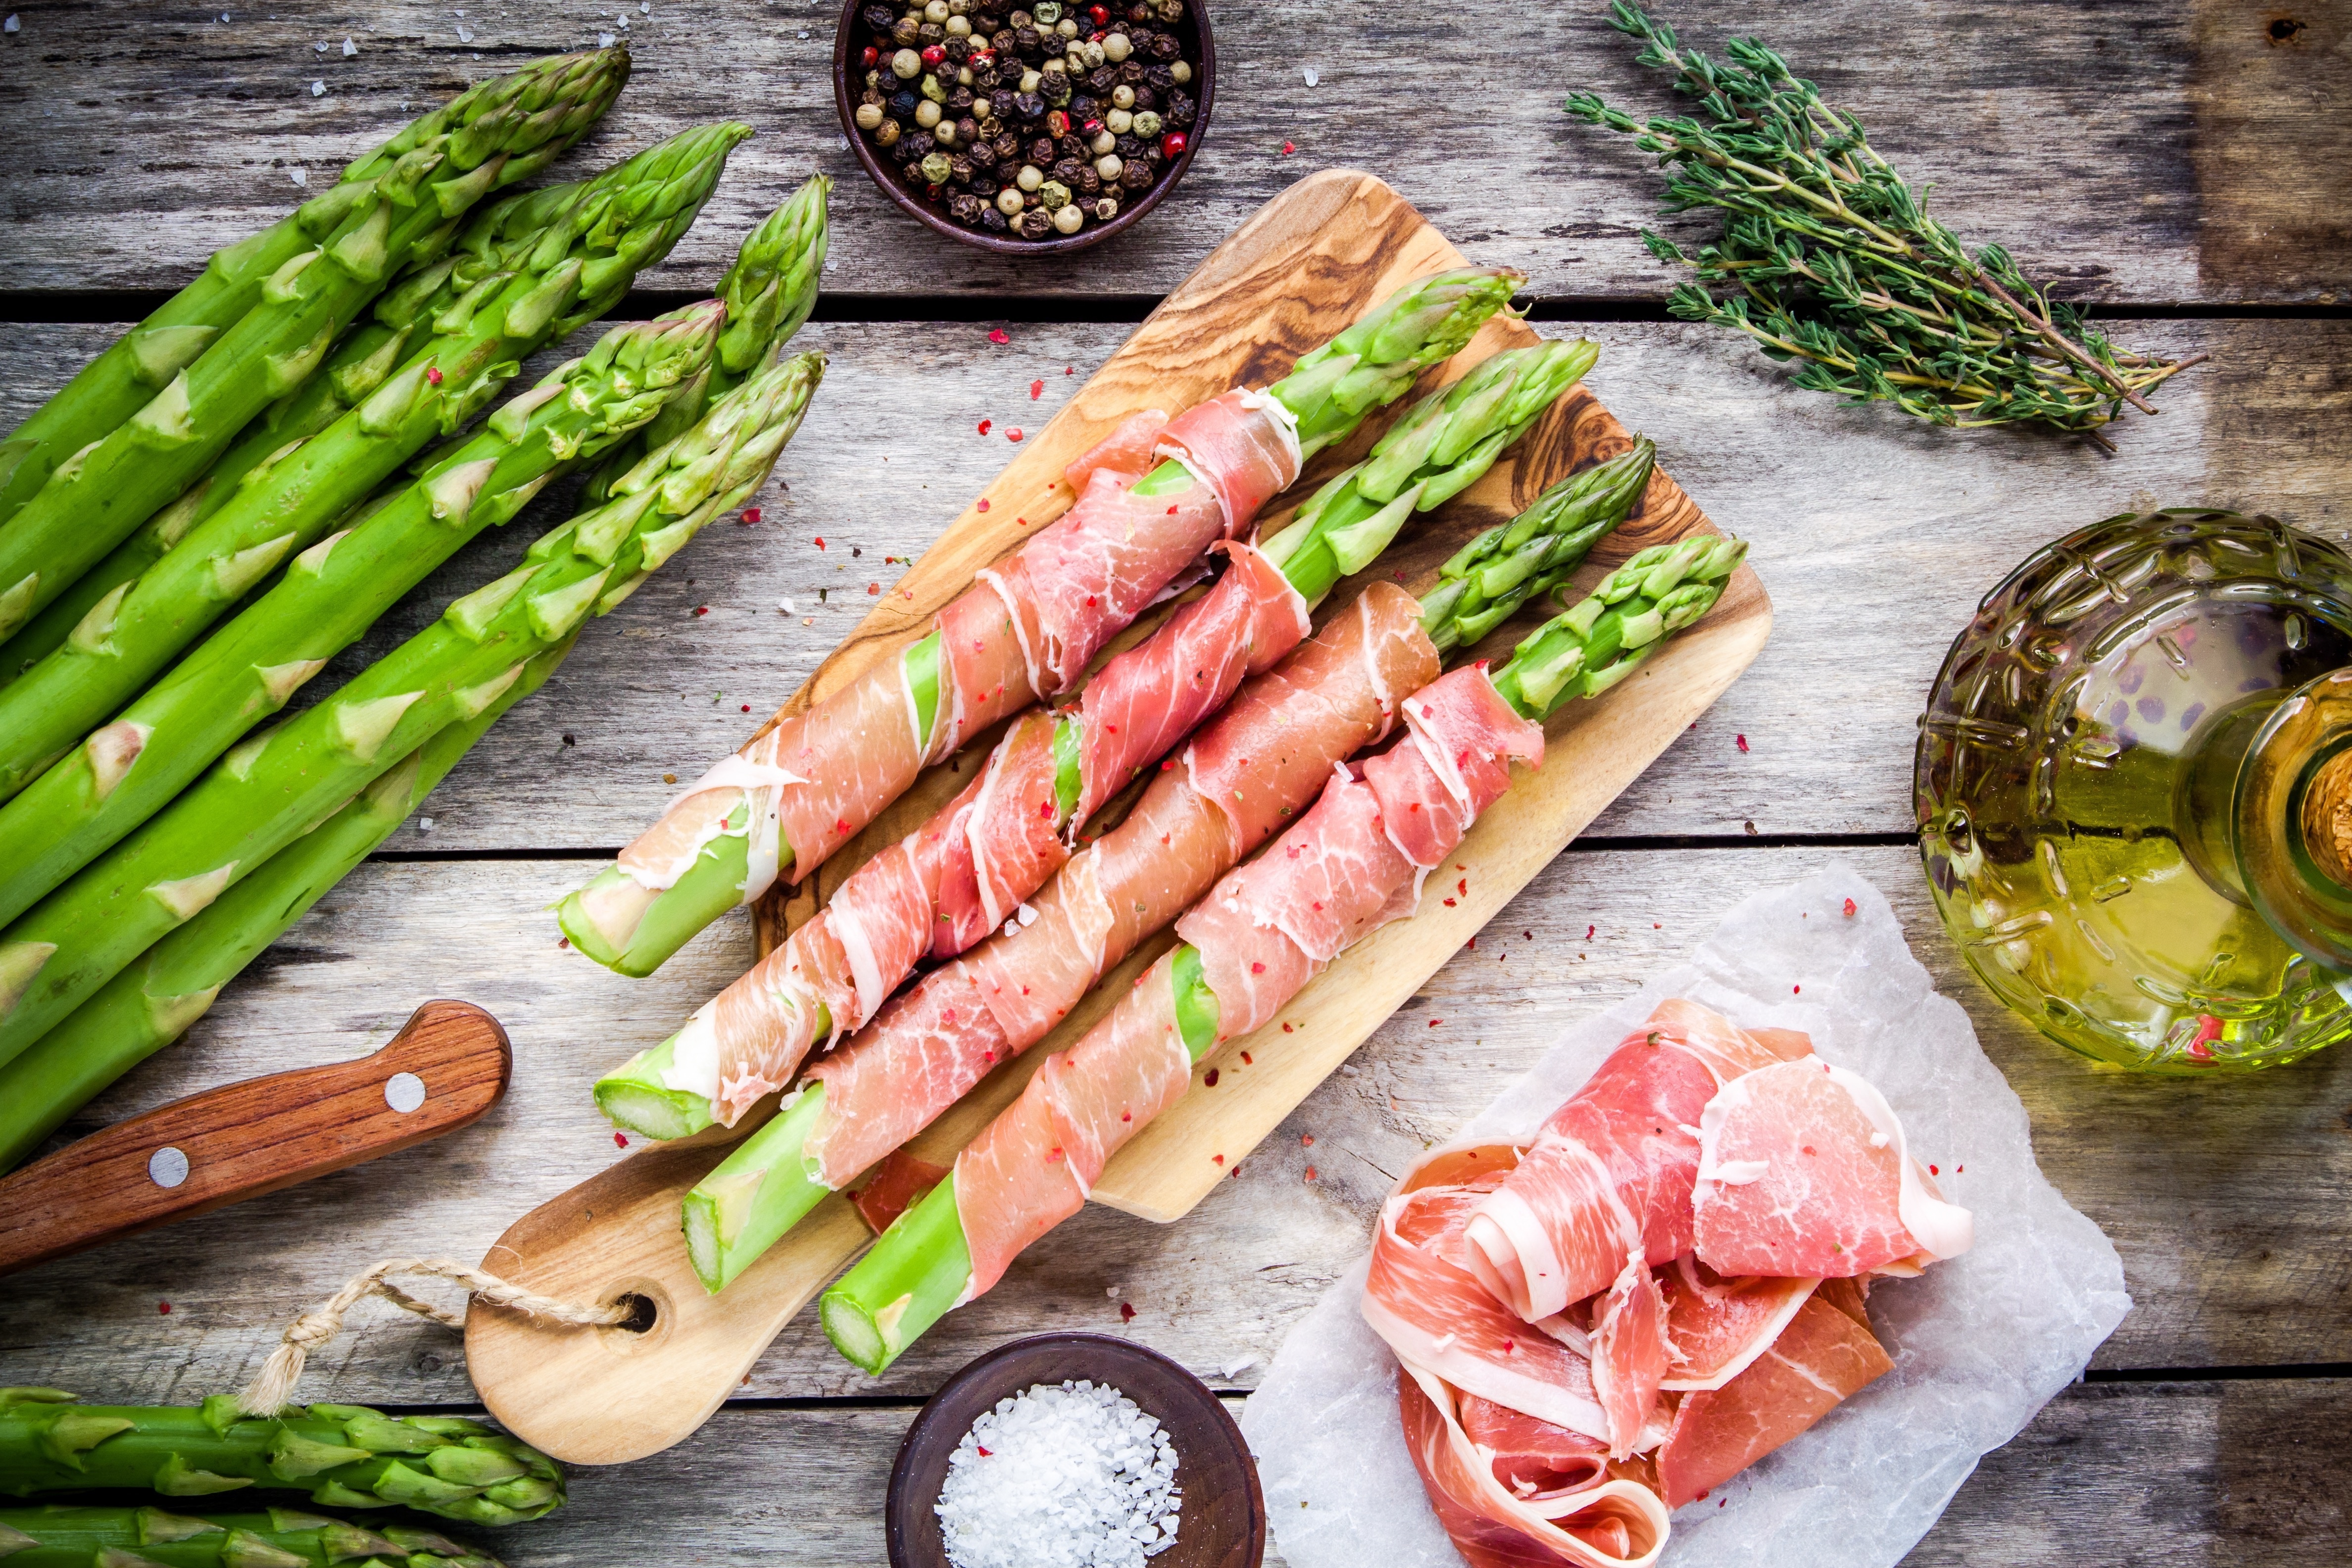 Prosciutto-wrapped asparagus are easily assembled in advance and ready to pop into the oven or on the grill when you are ready to serve. They make a great appetizer to pass around while the rest of your meal is cooking.